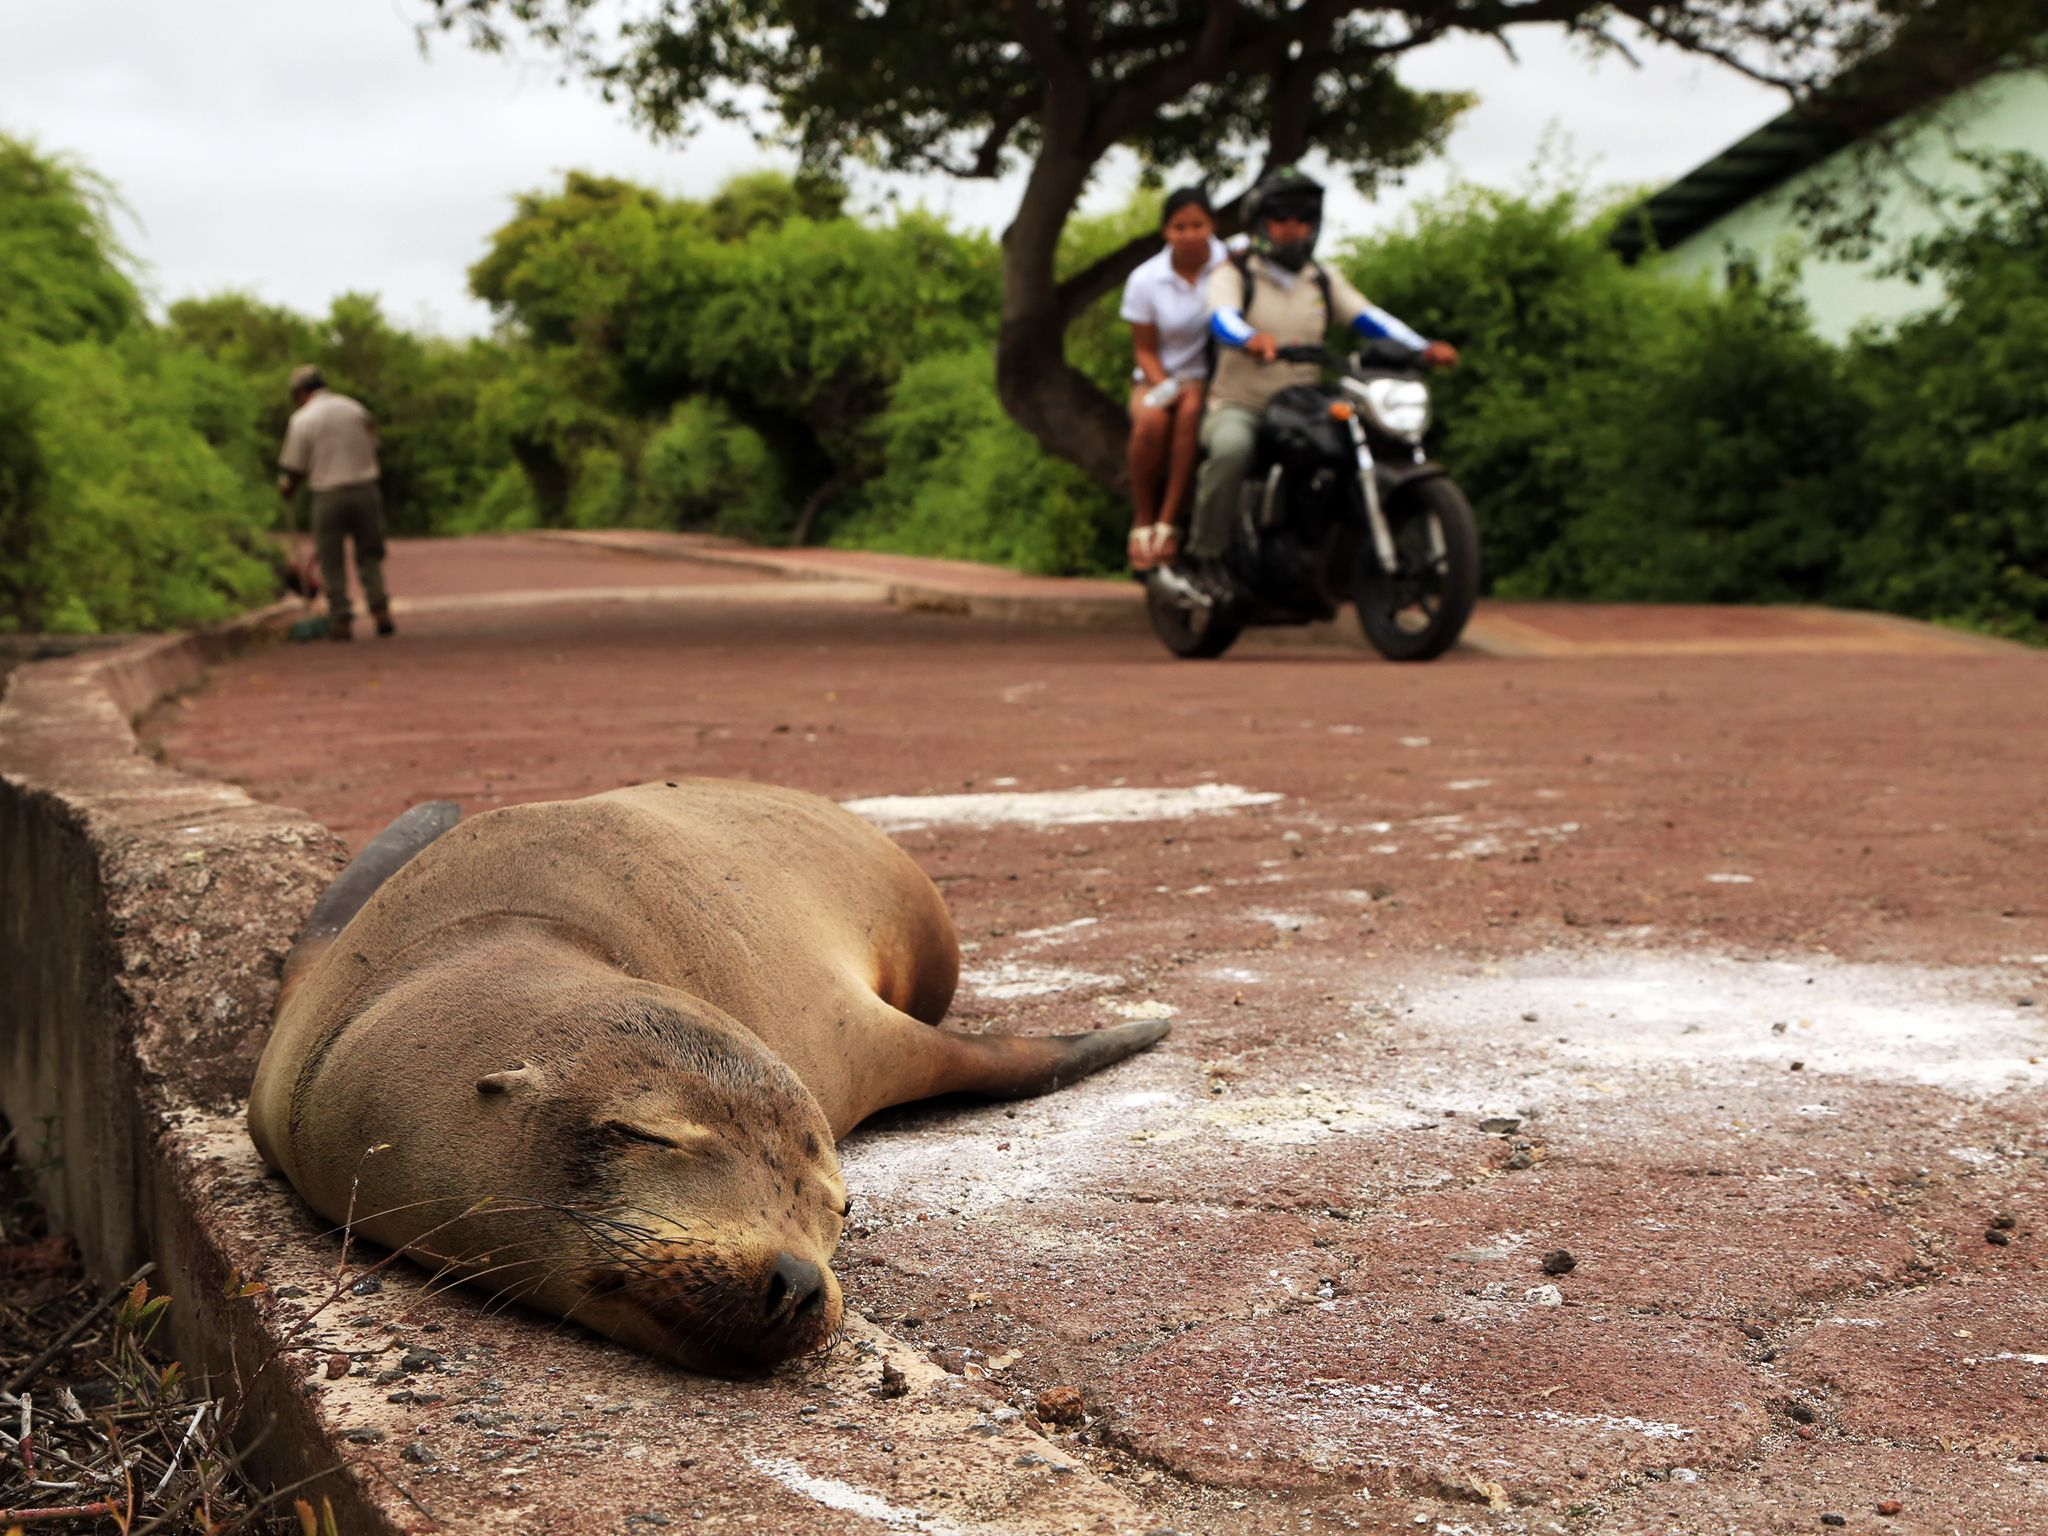 Puerto Ayora, Santa Cruz Island, Galapagos, Ecuador: A sea lion sleeps on the road at Galapagos N... [Photo of the day - دسامبر 2014]